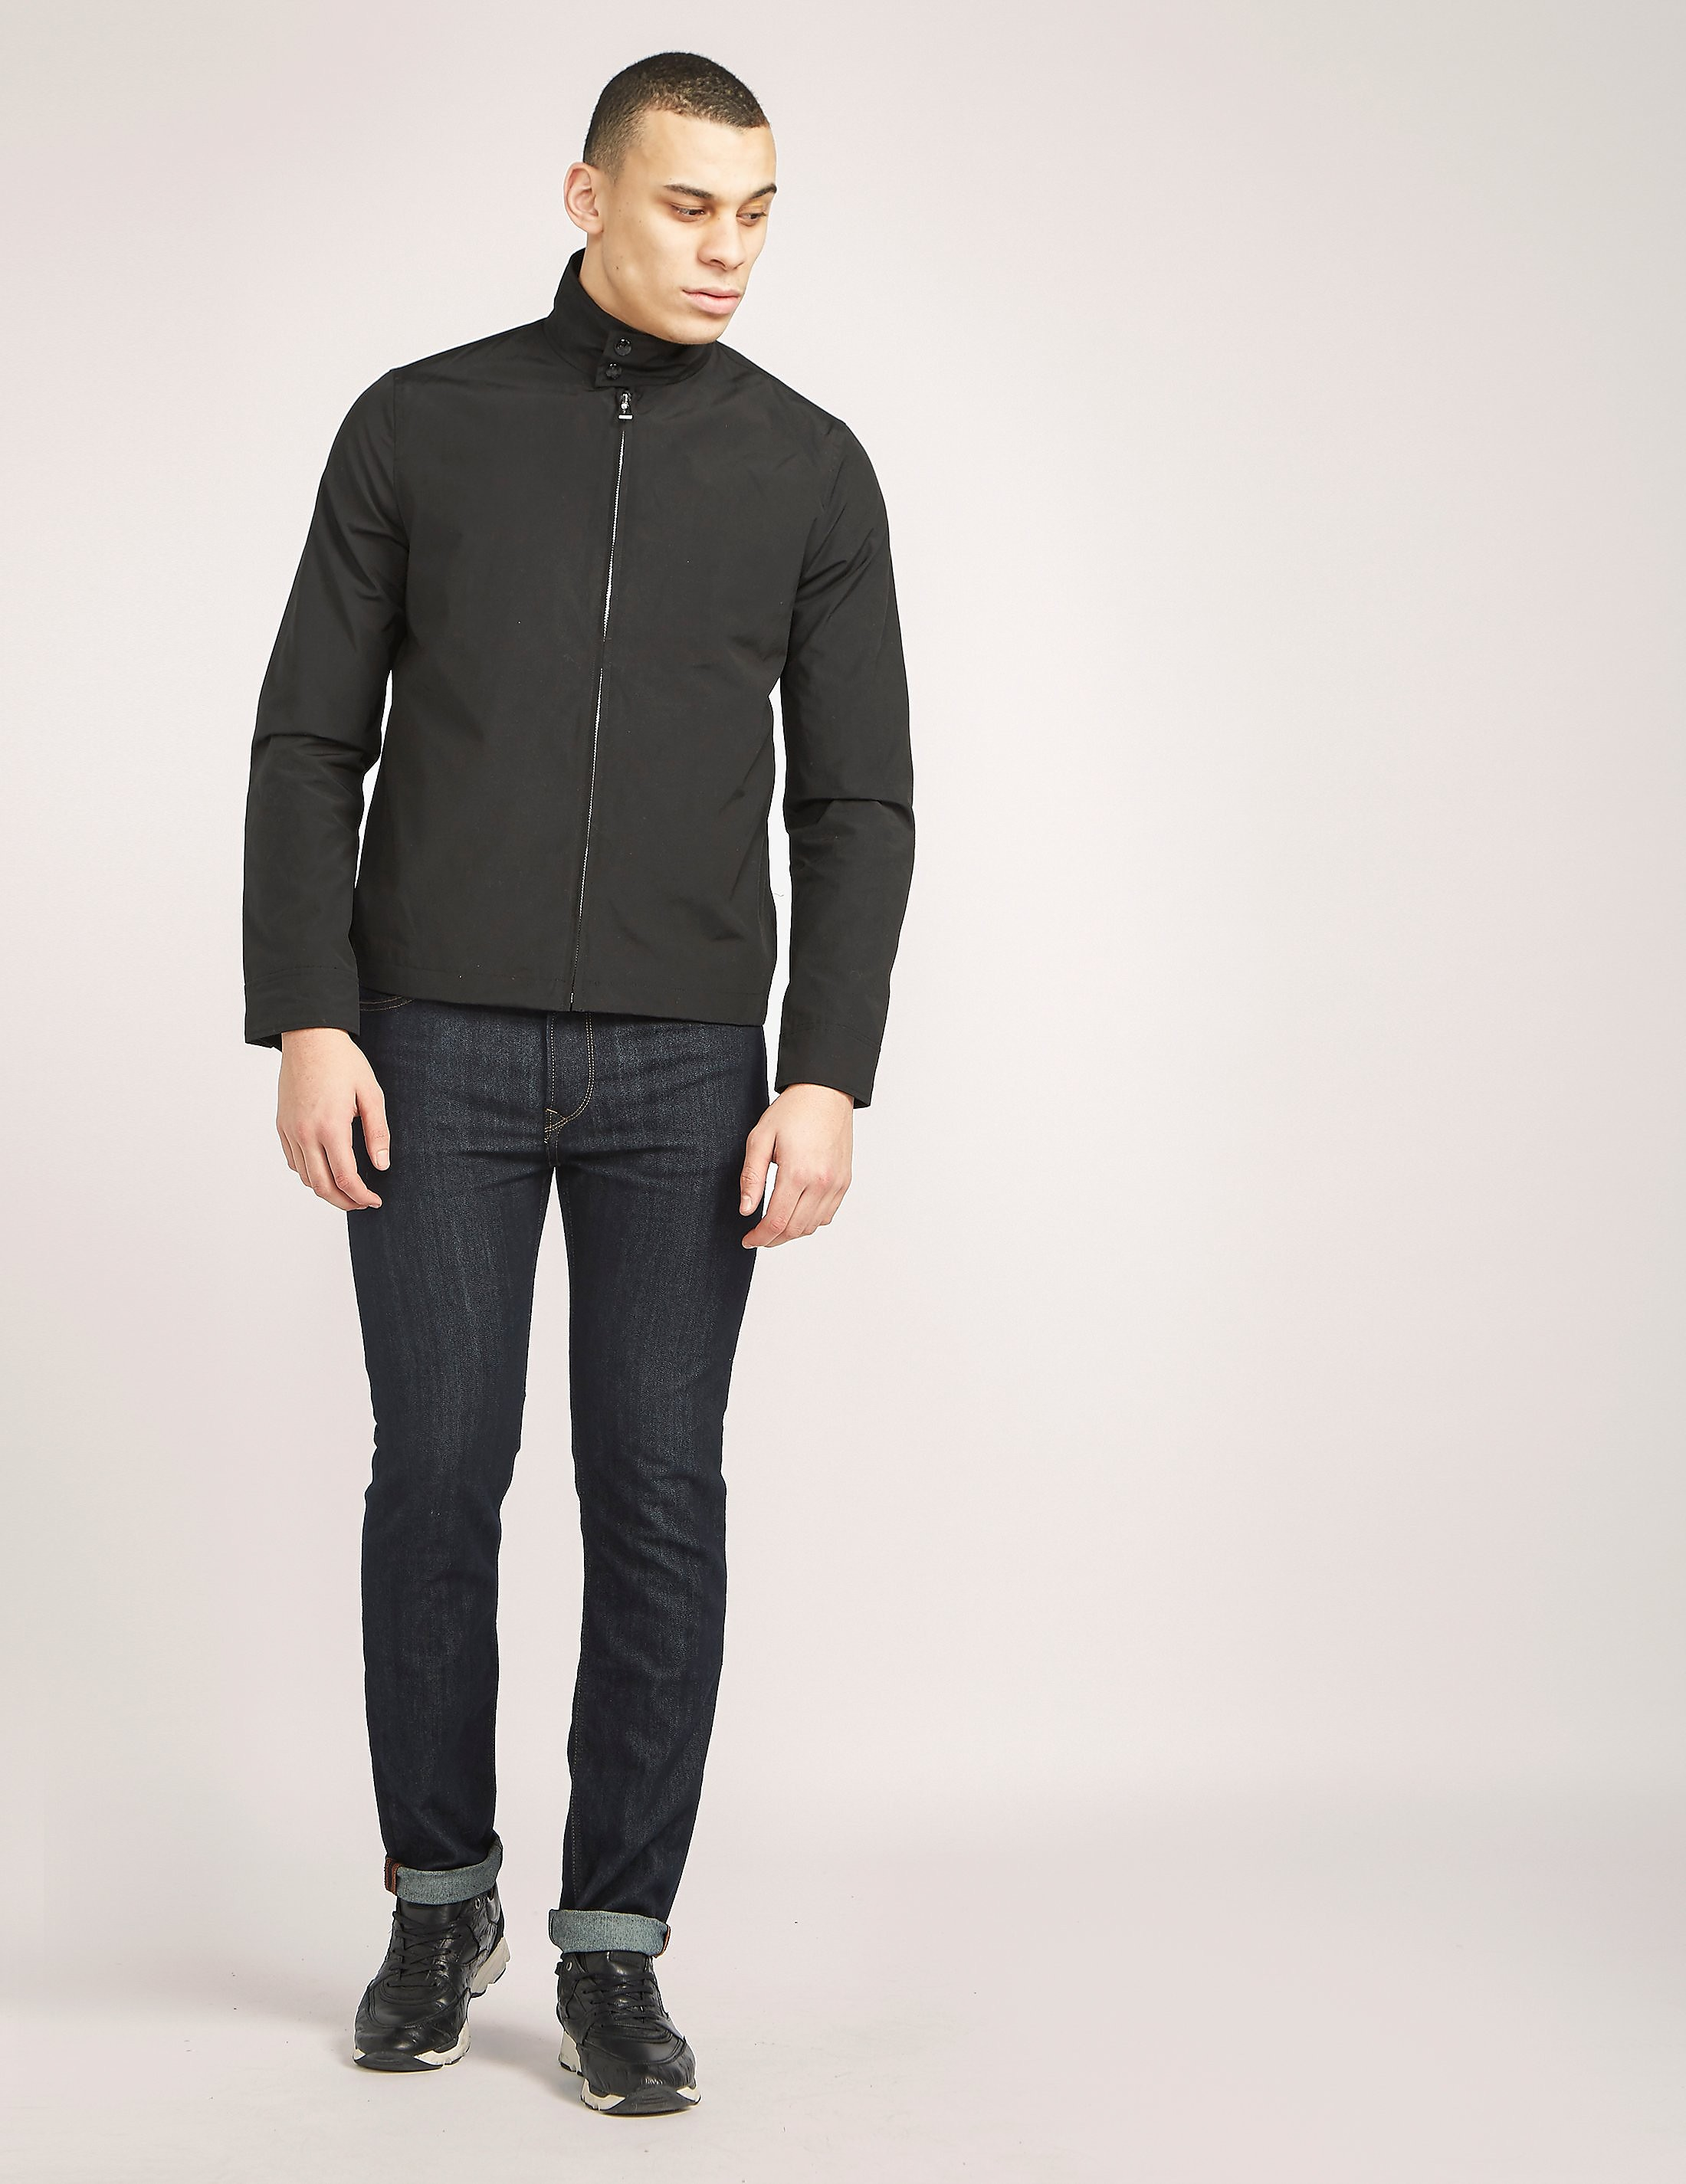 Paul Smith Polycotton Showerproof Jacket